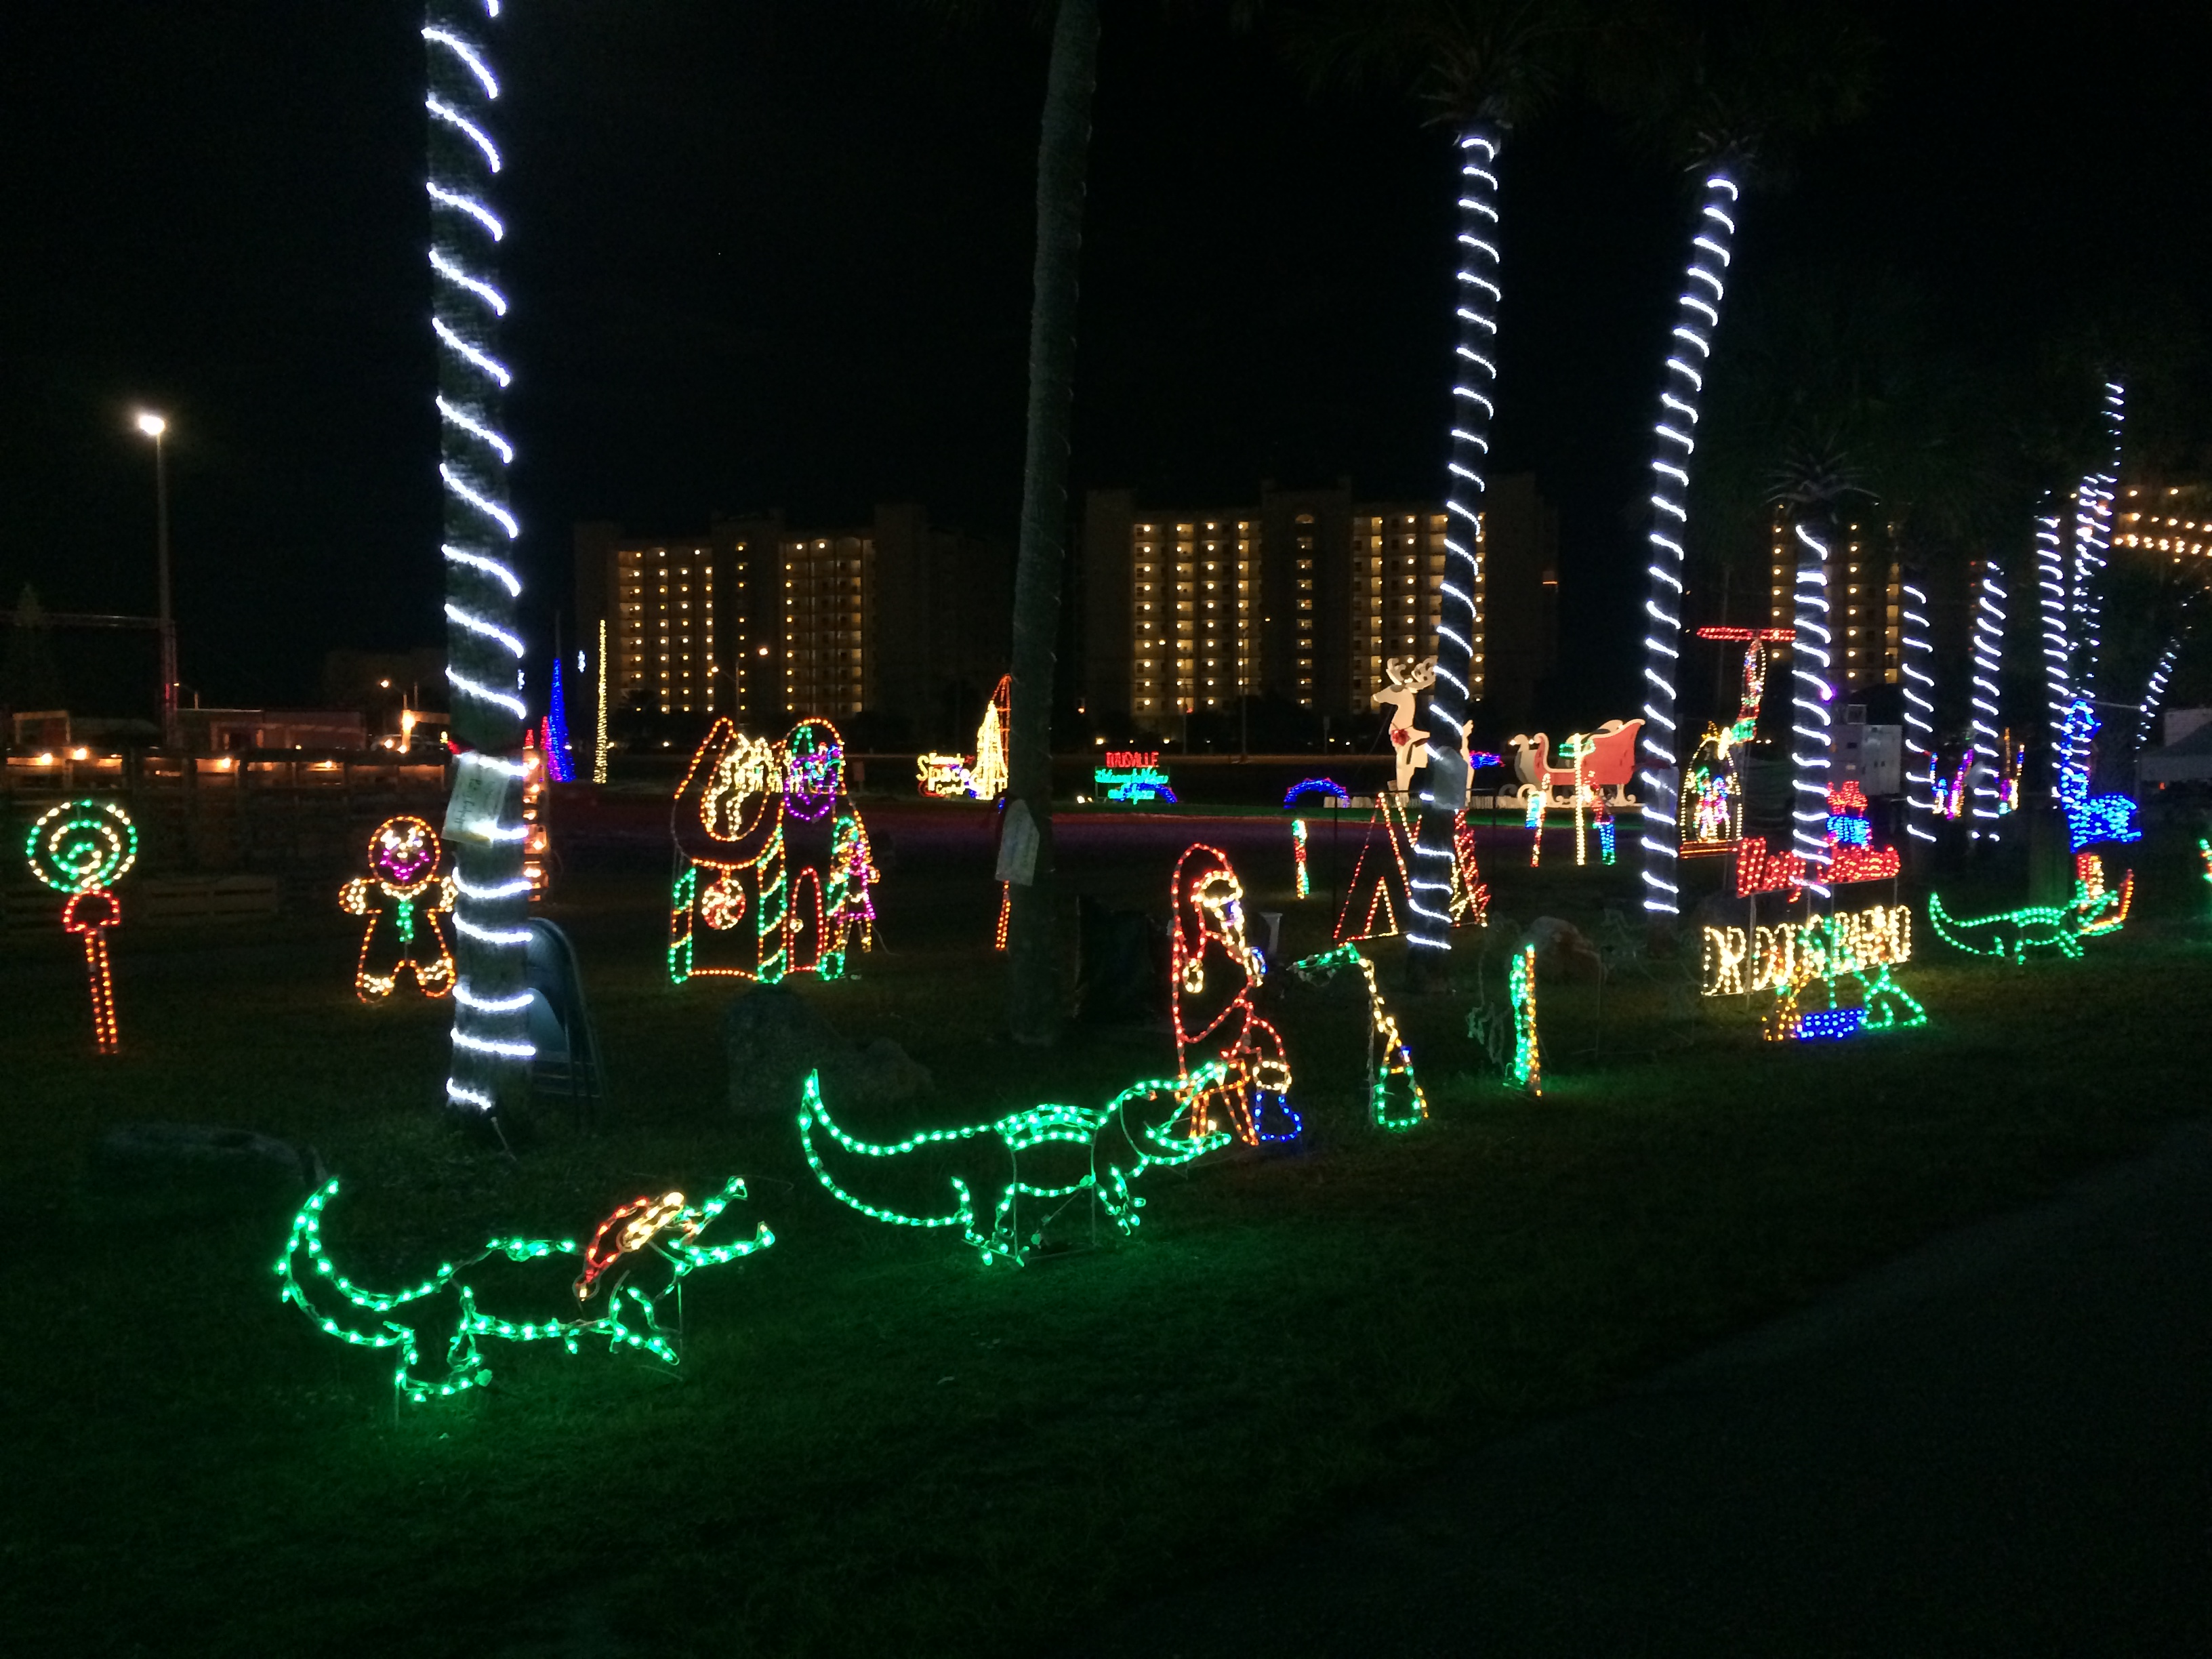 Lights of Hope – Hope for North Brevard, Inc.